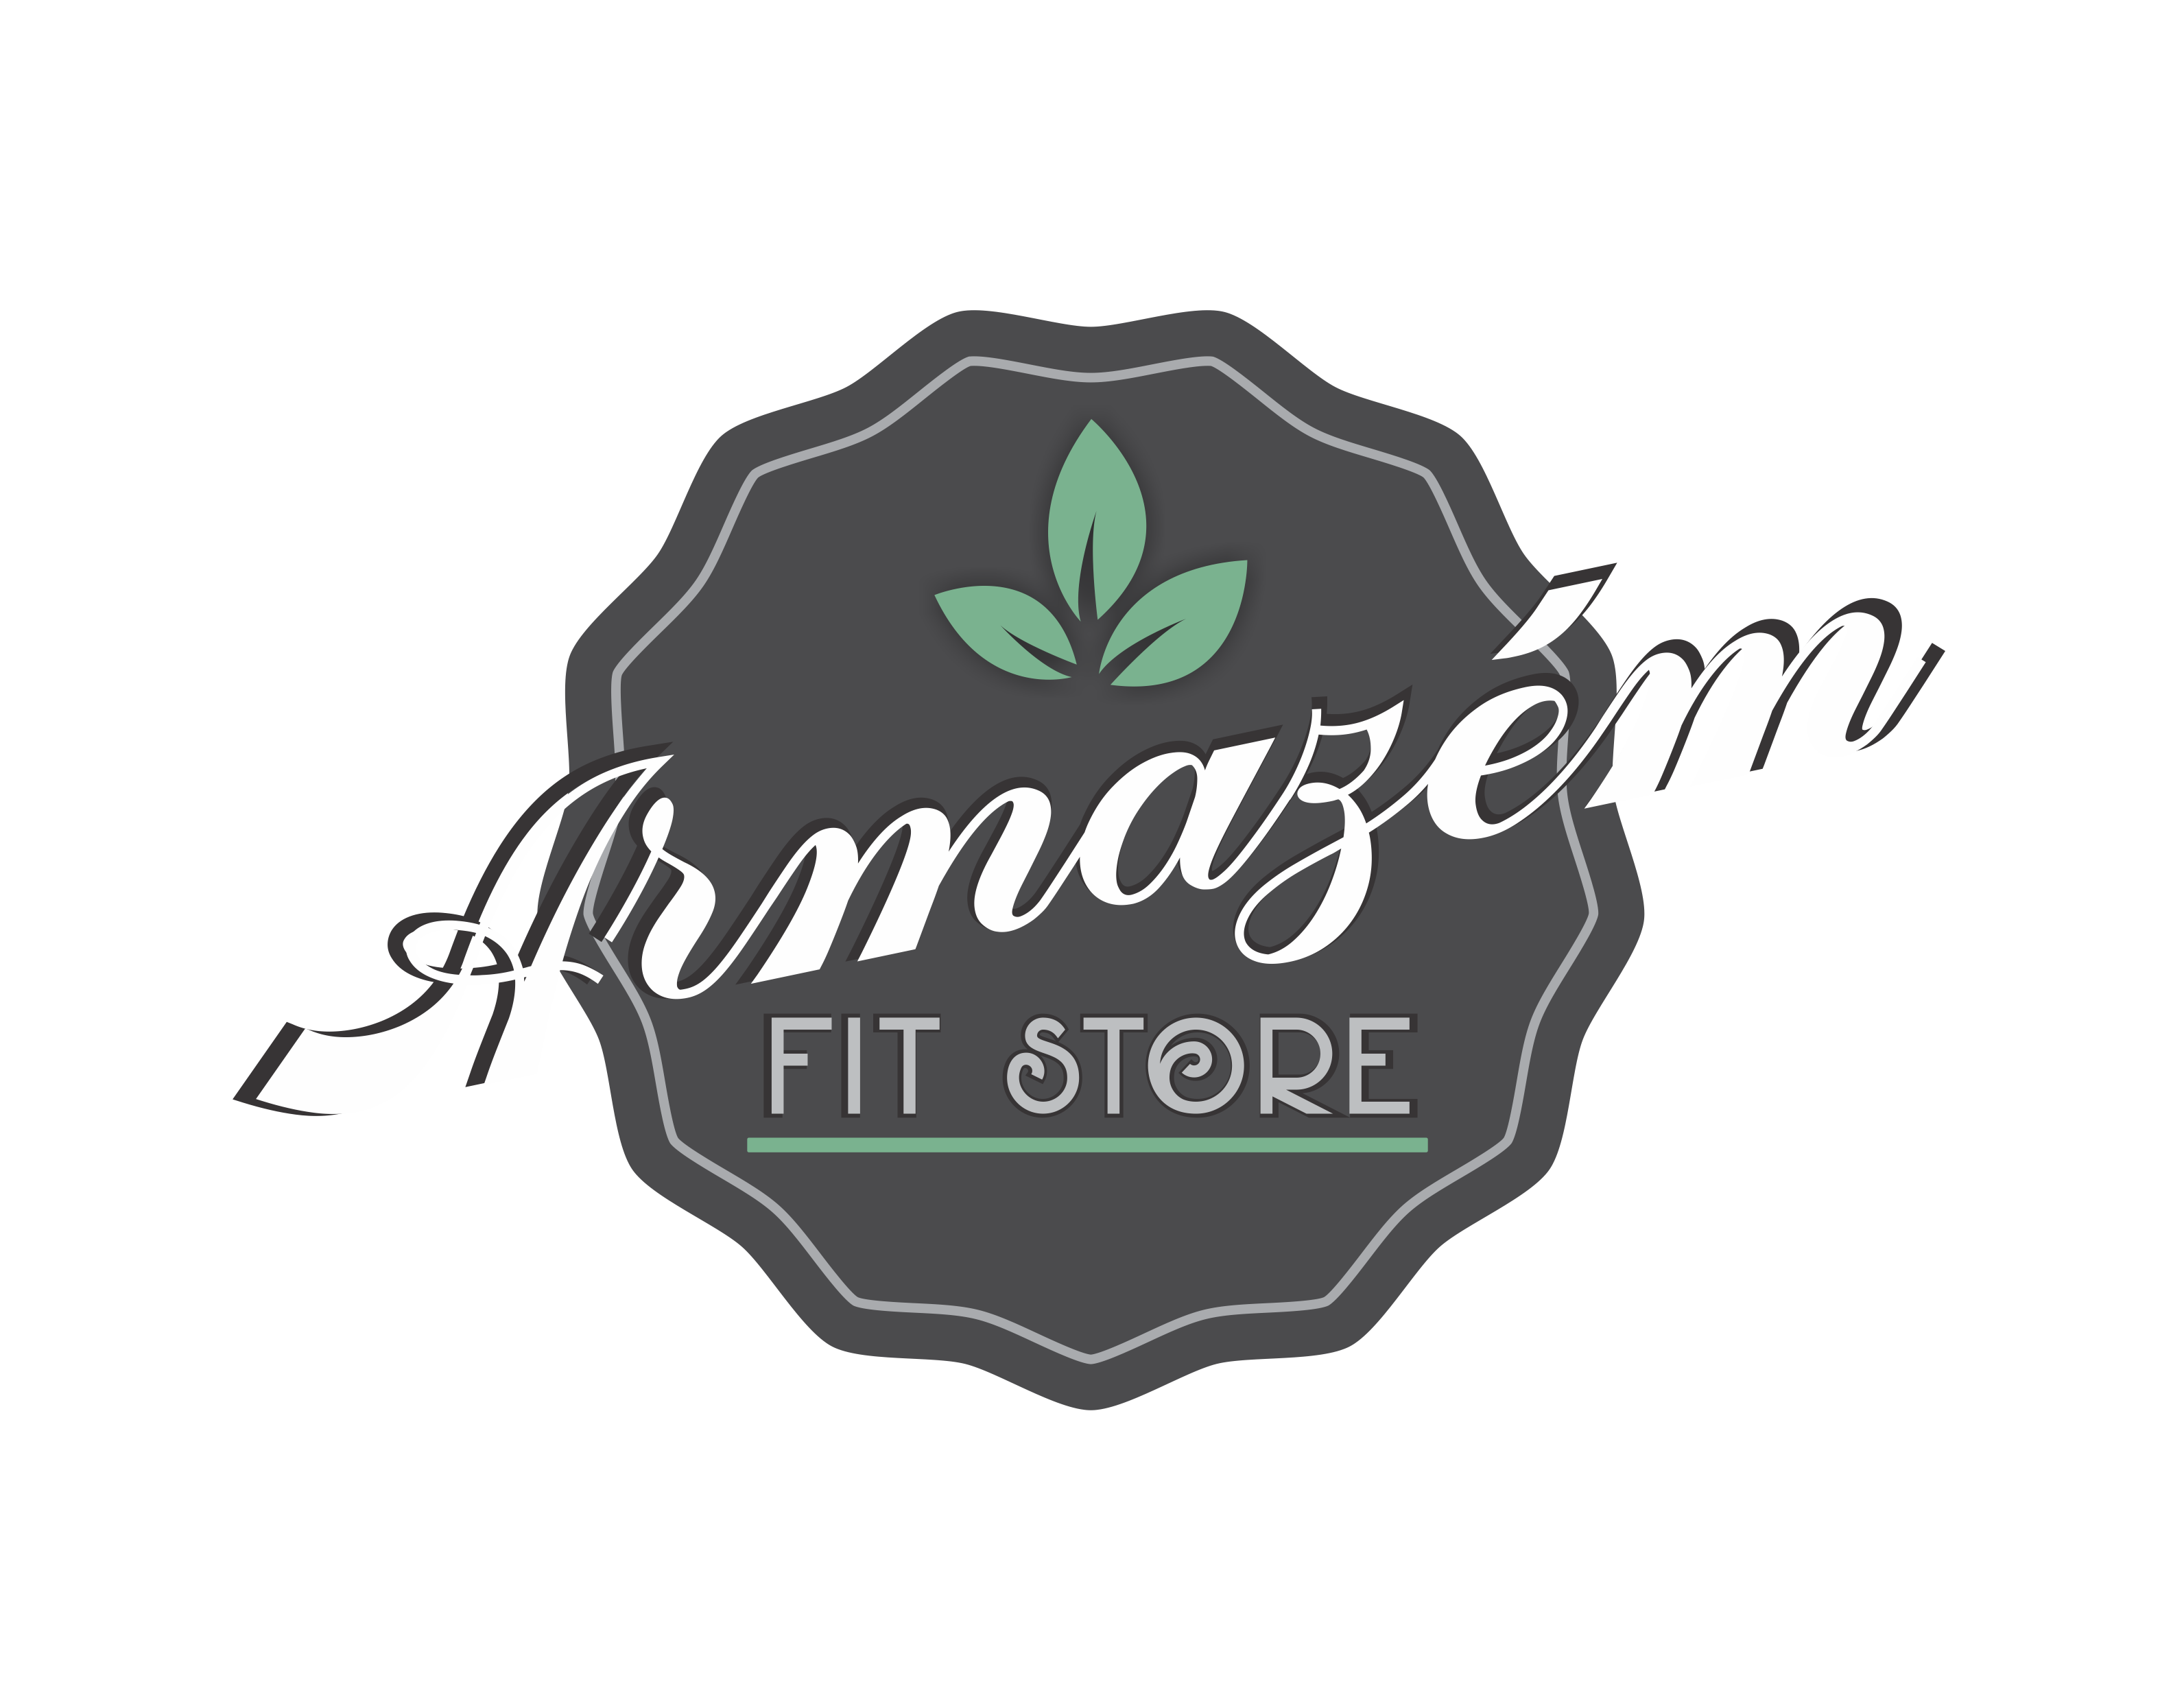 Logo Armazém Fit Store AFS Franchising